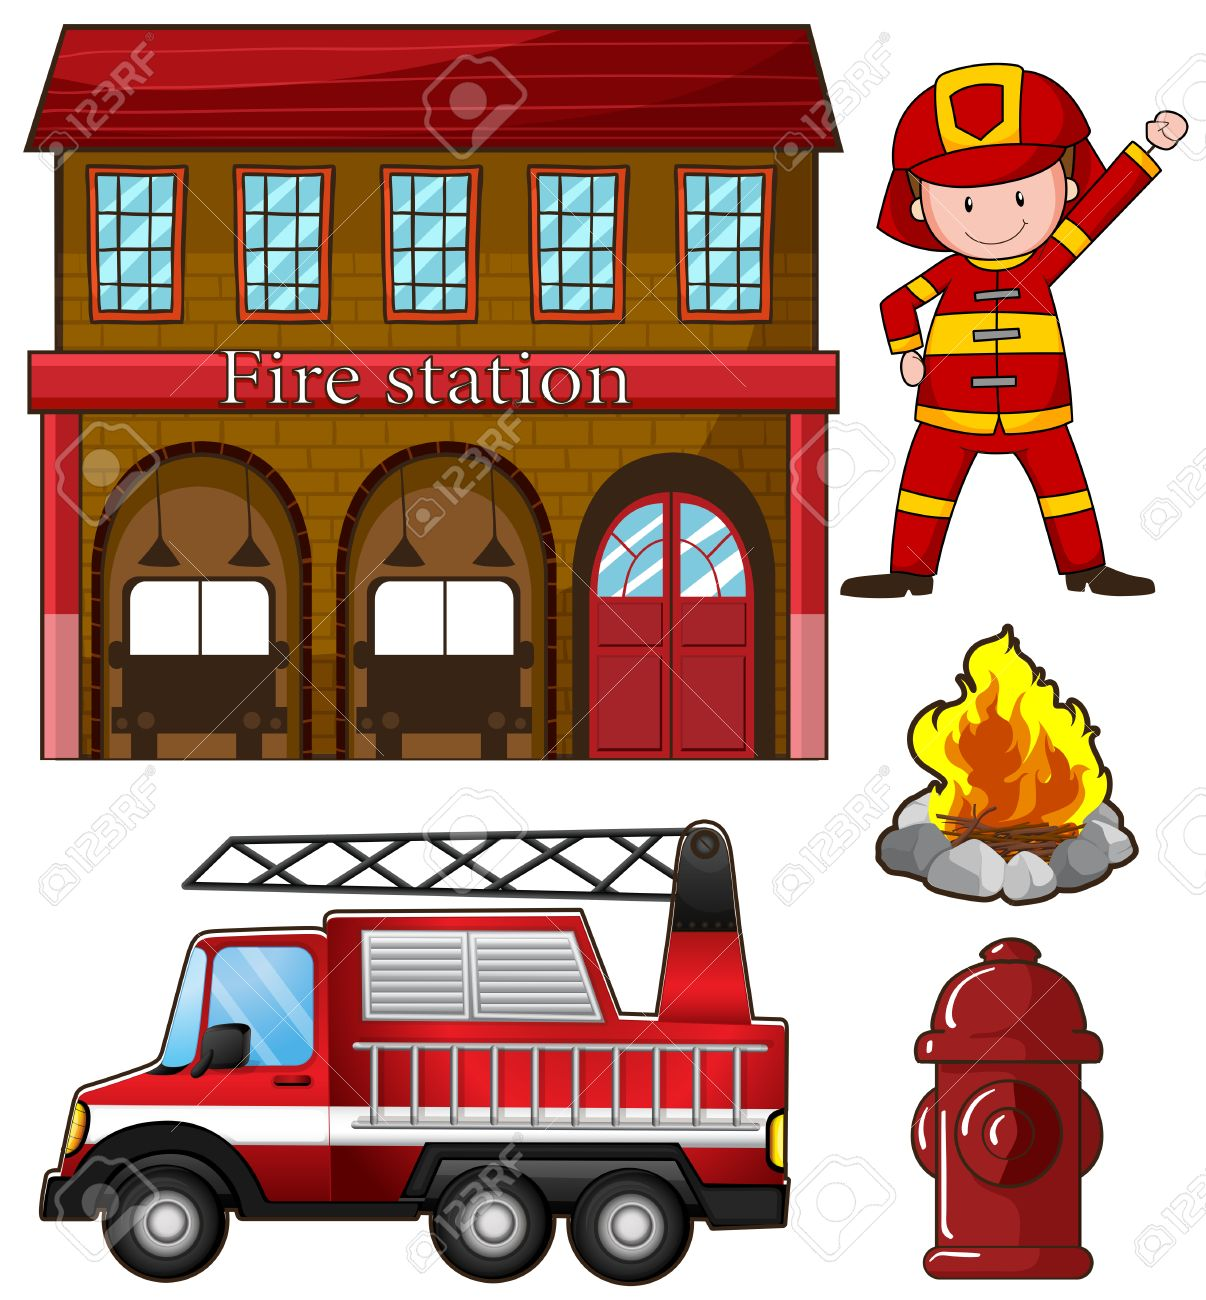 hight resolution of fireman and fire station illustration stock vector 44656987